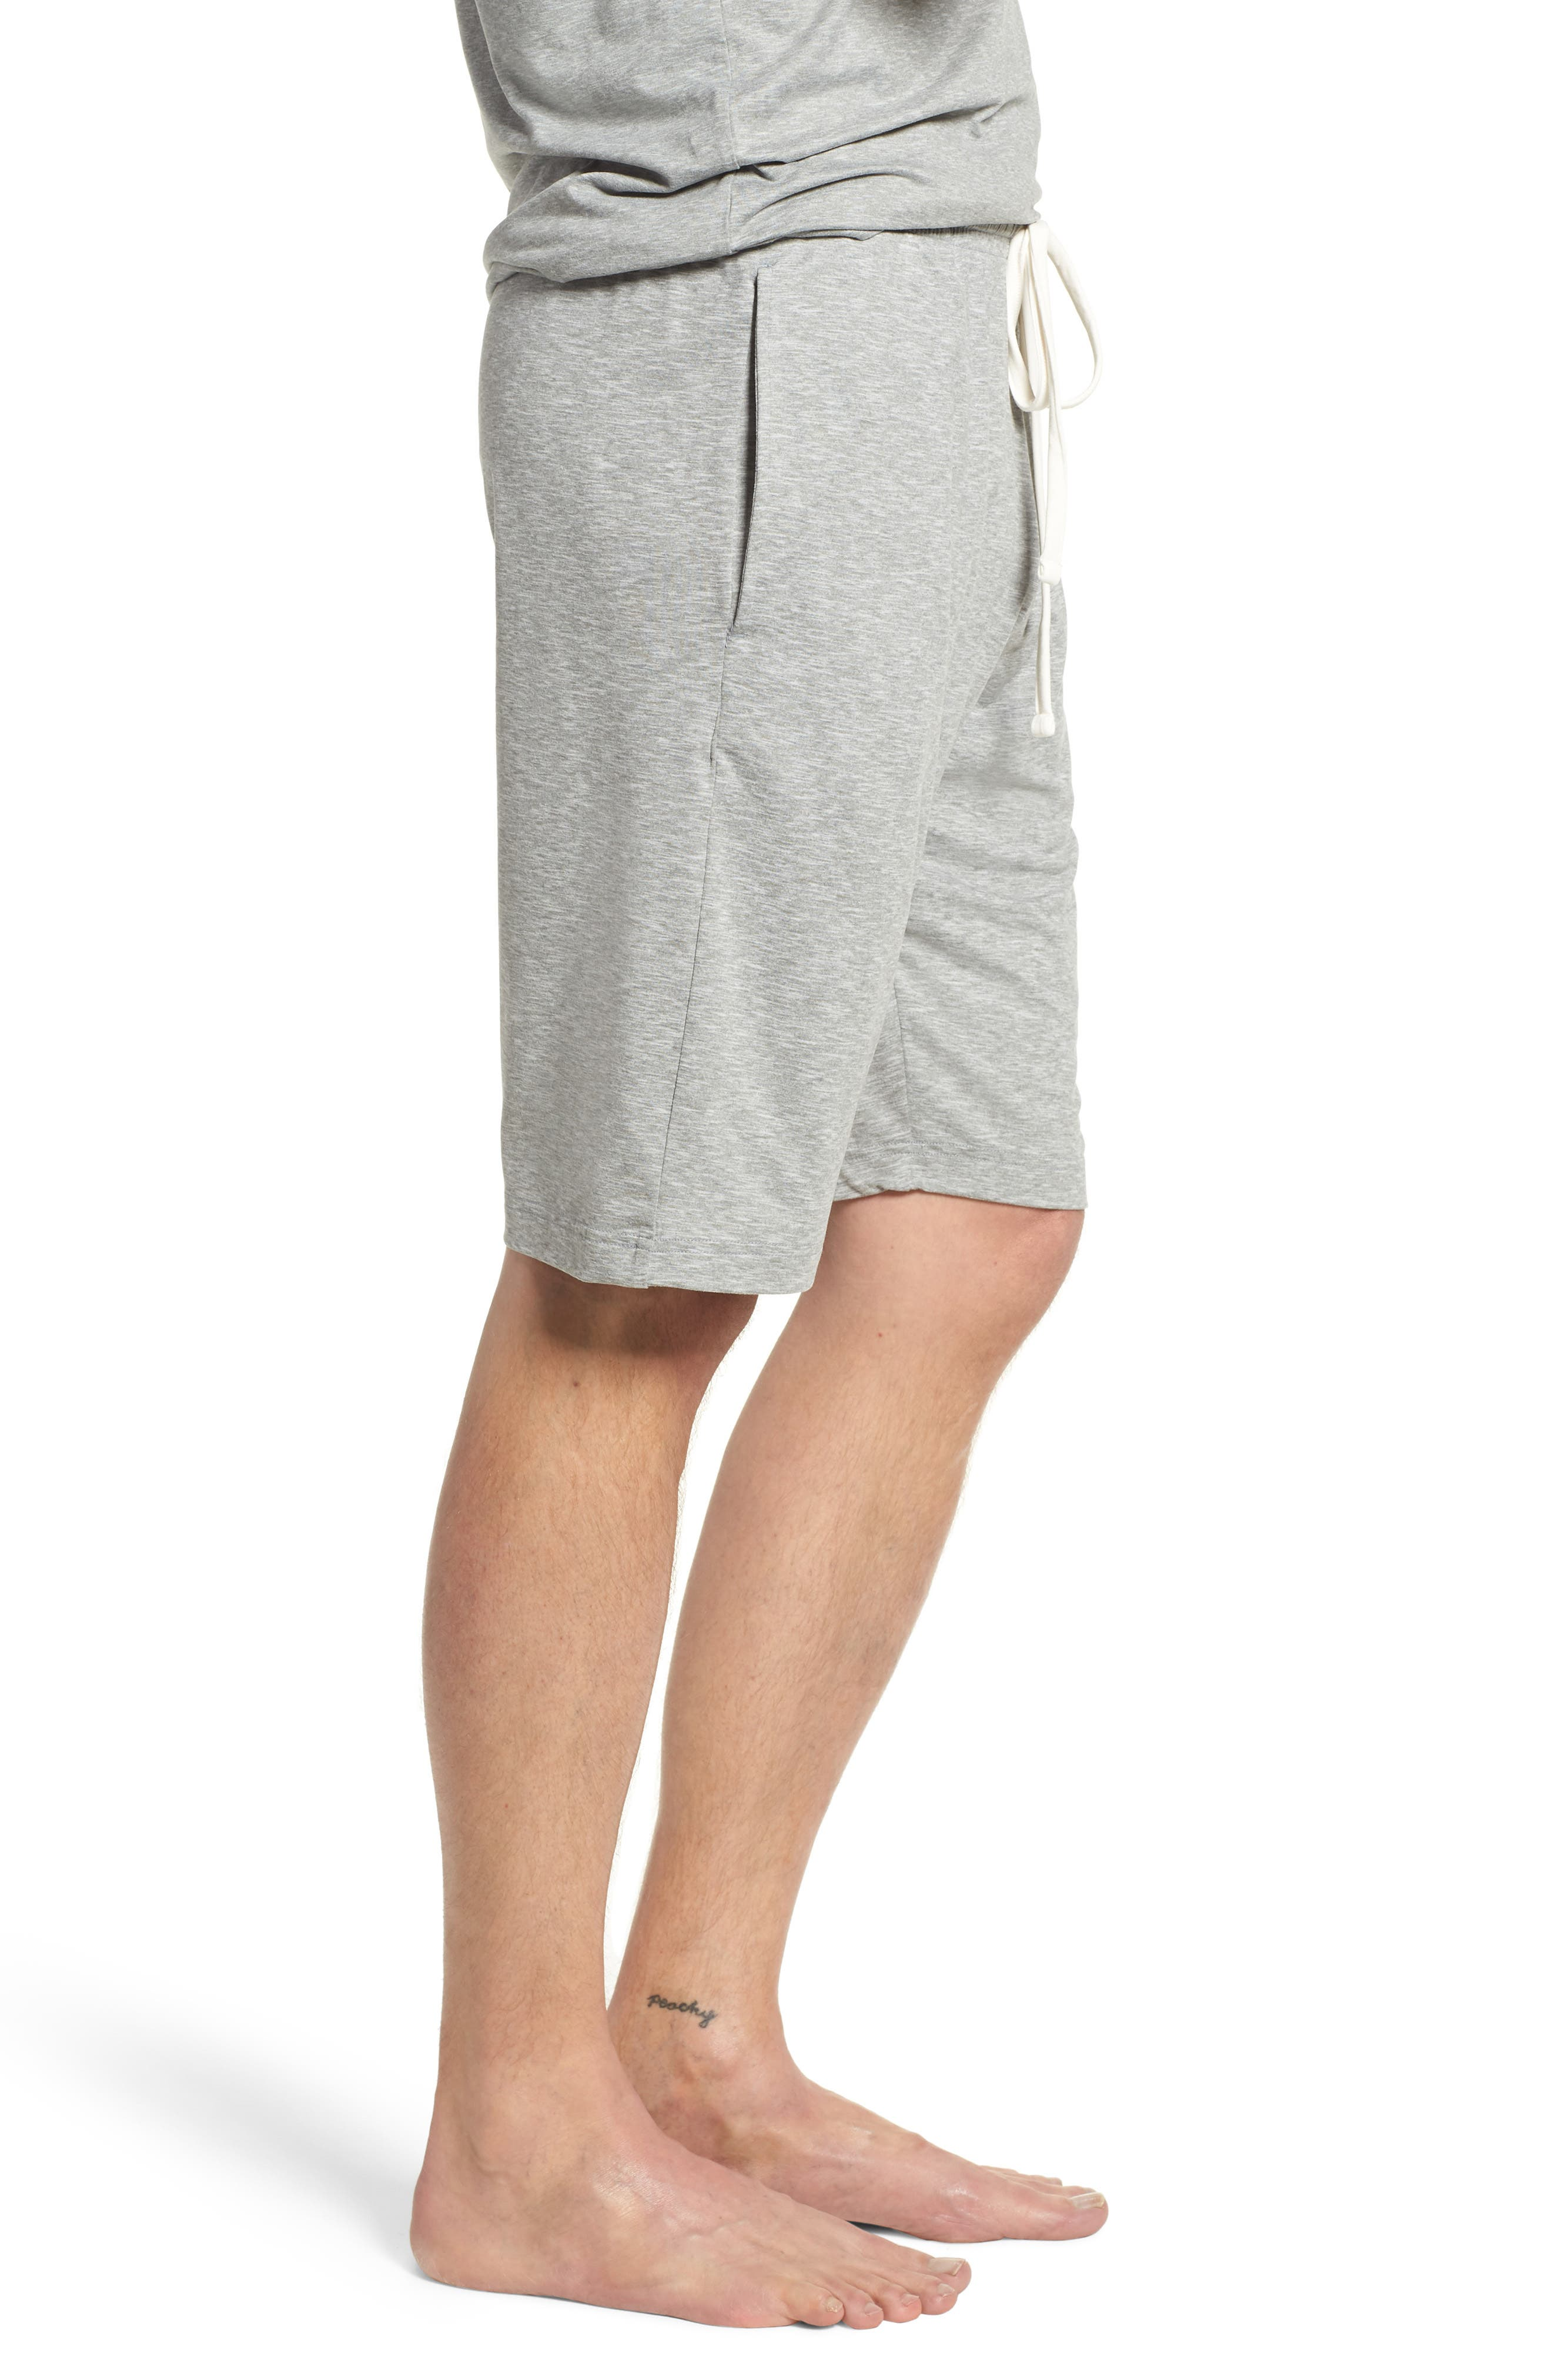 Therma Lounge Shorts,                             Alternate thumbnail 3, color,                             Andover Heather/ Nevis